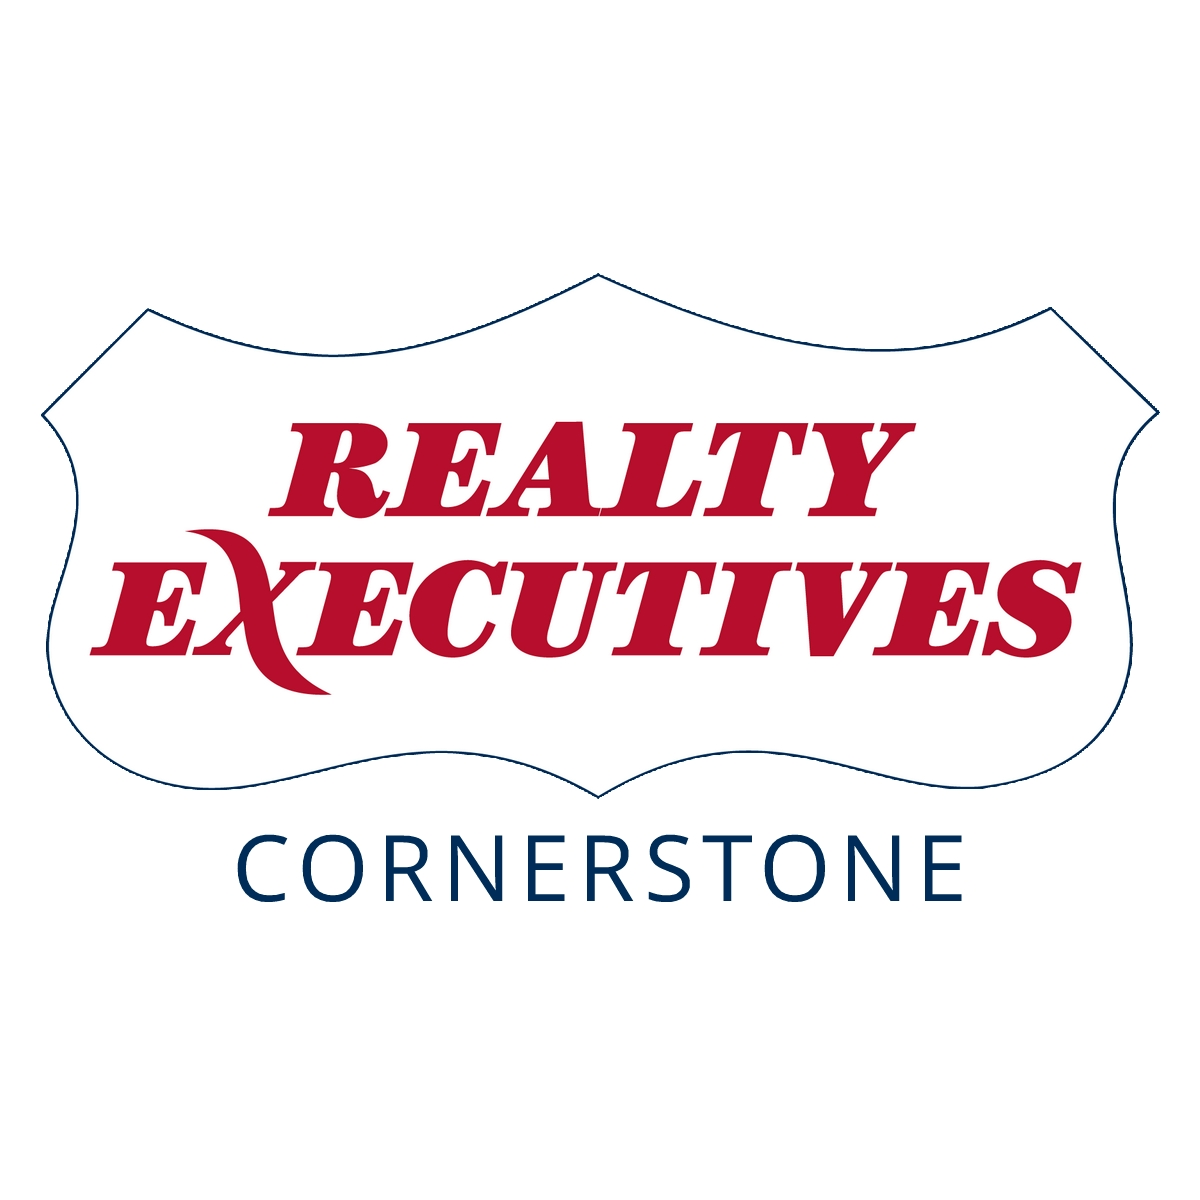 Realty Executives Cornerstone (Whittier)